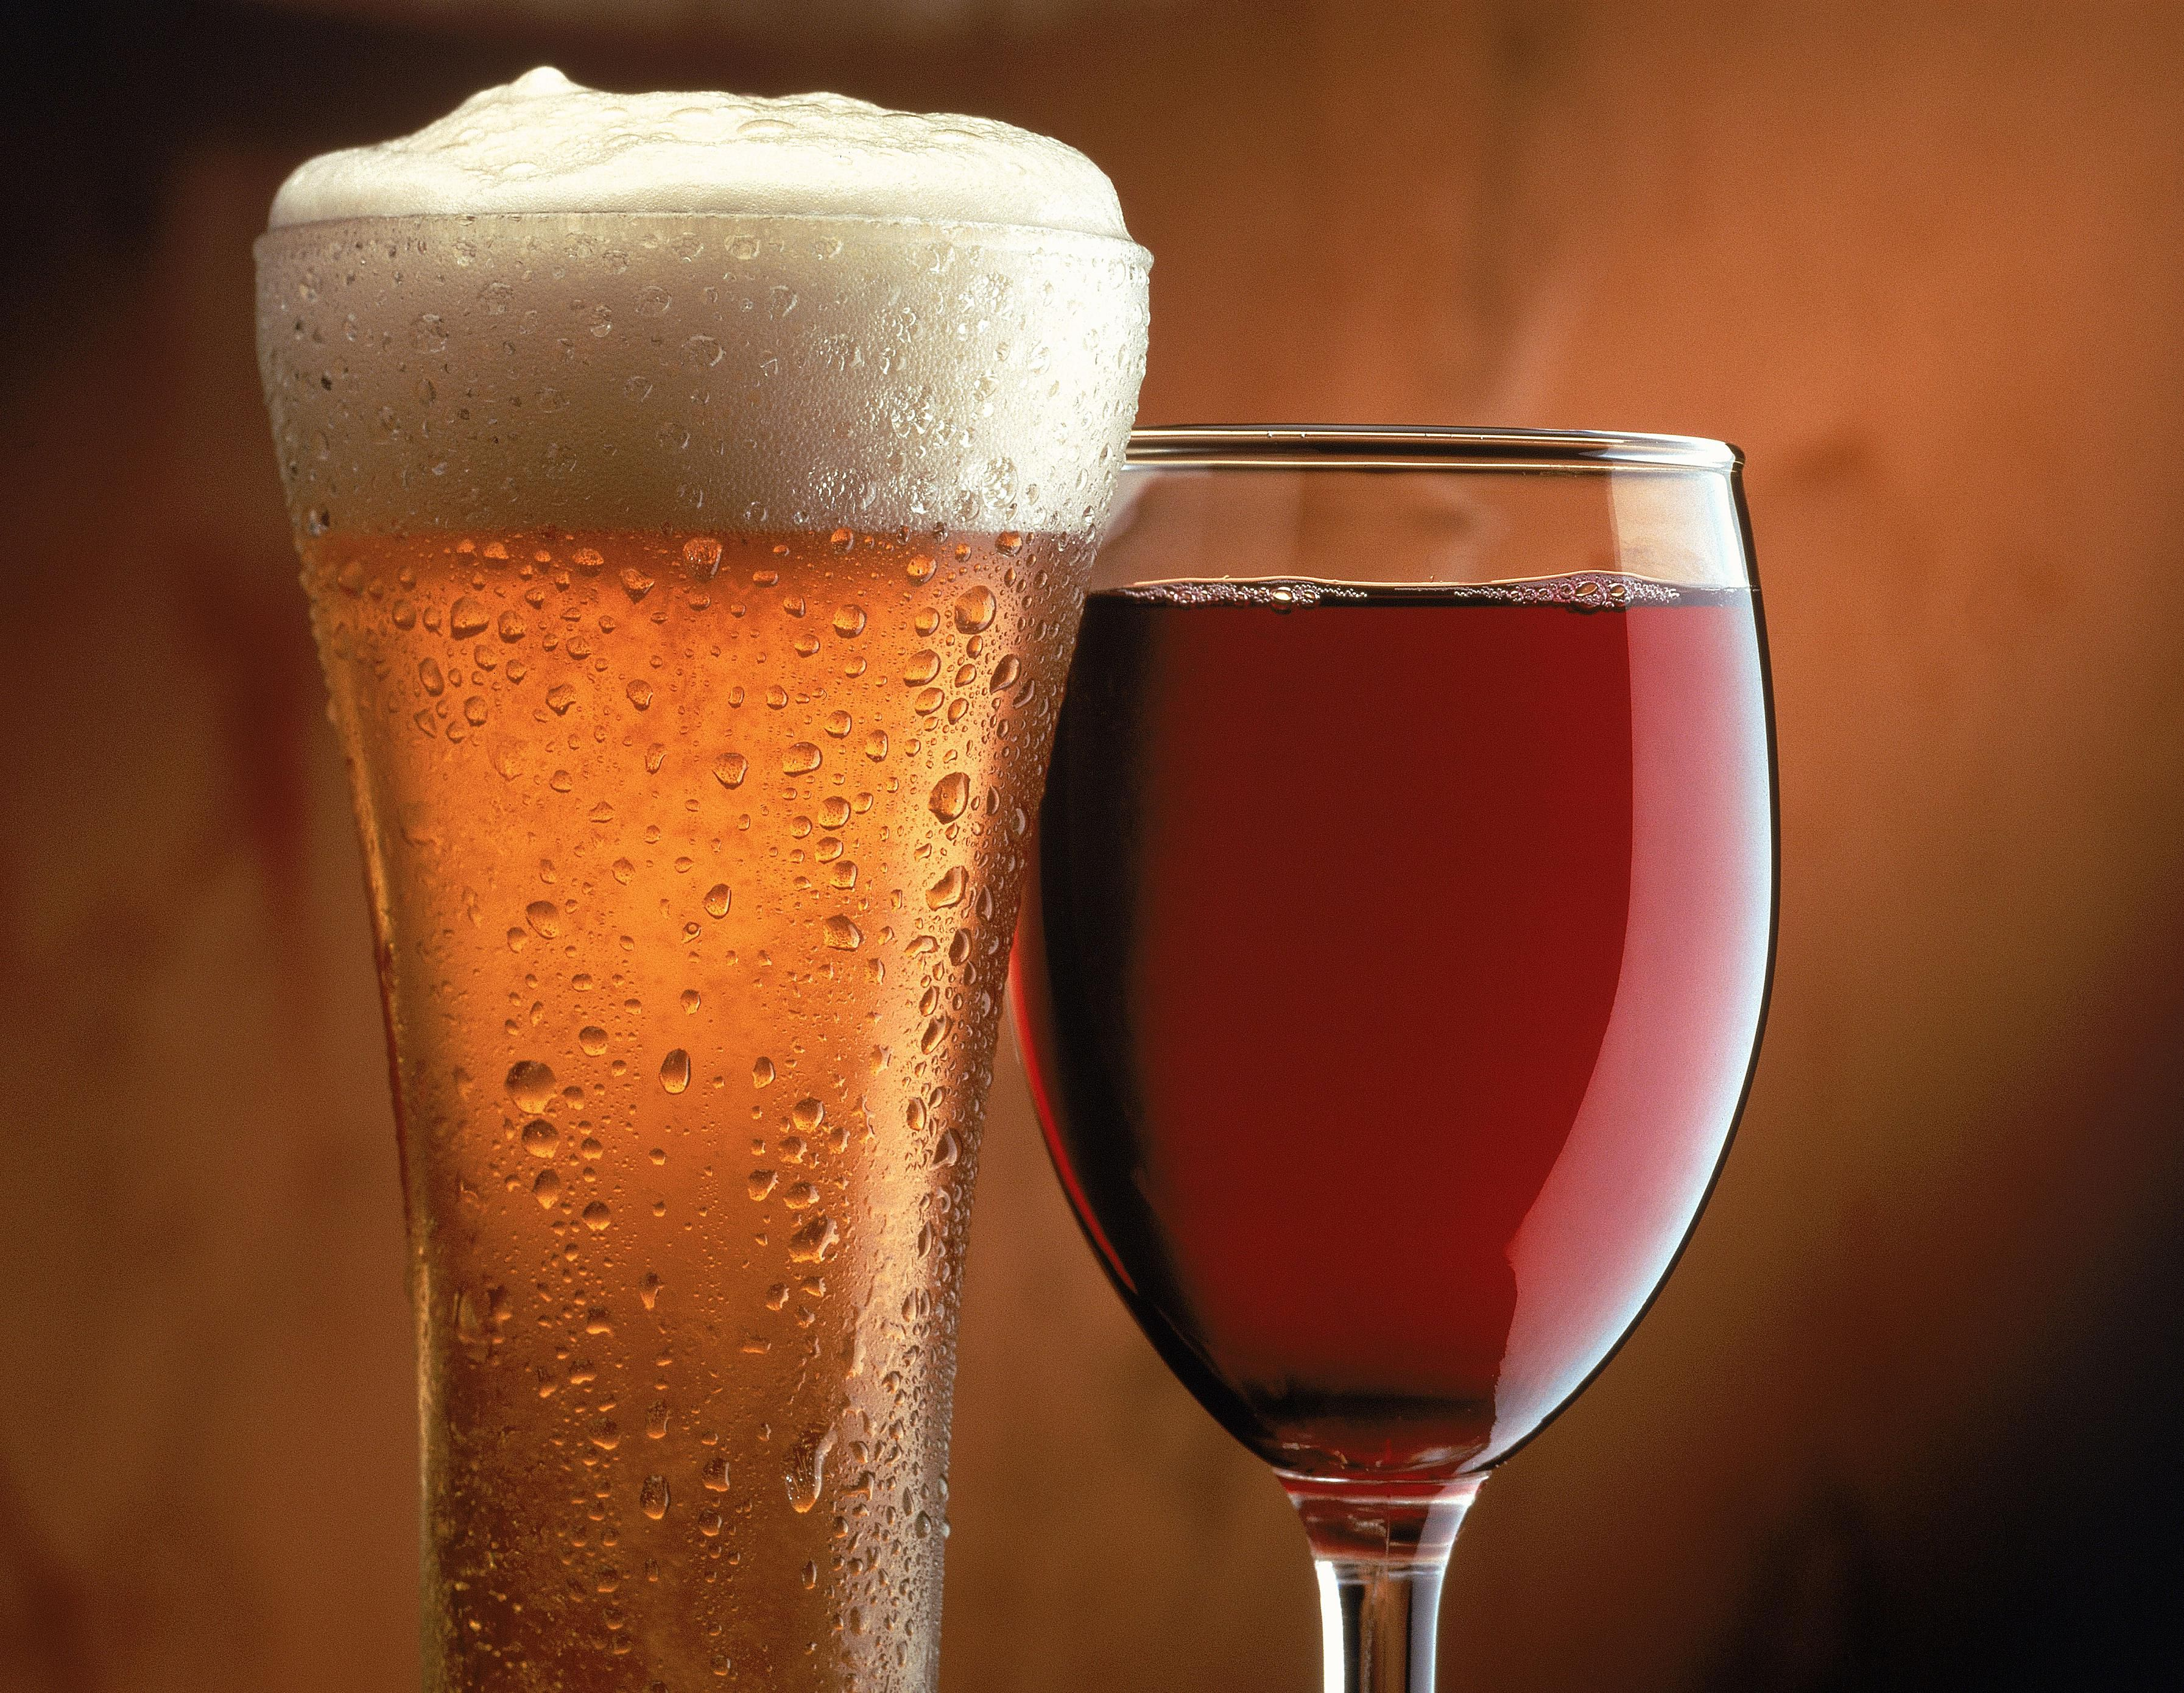 The wine and beer simulated by this chemistry demonstration aren't alcoholic, nor are they good to drink.